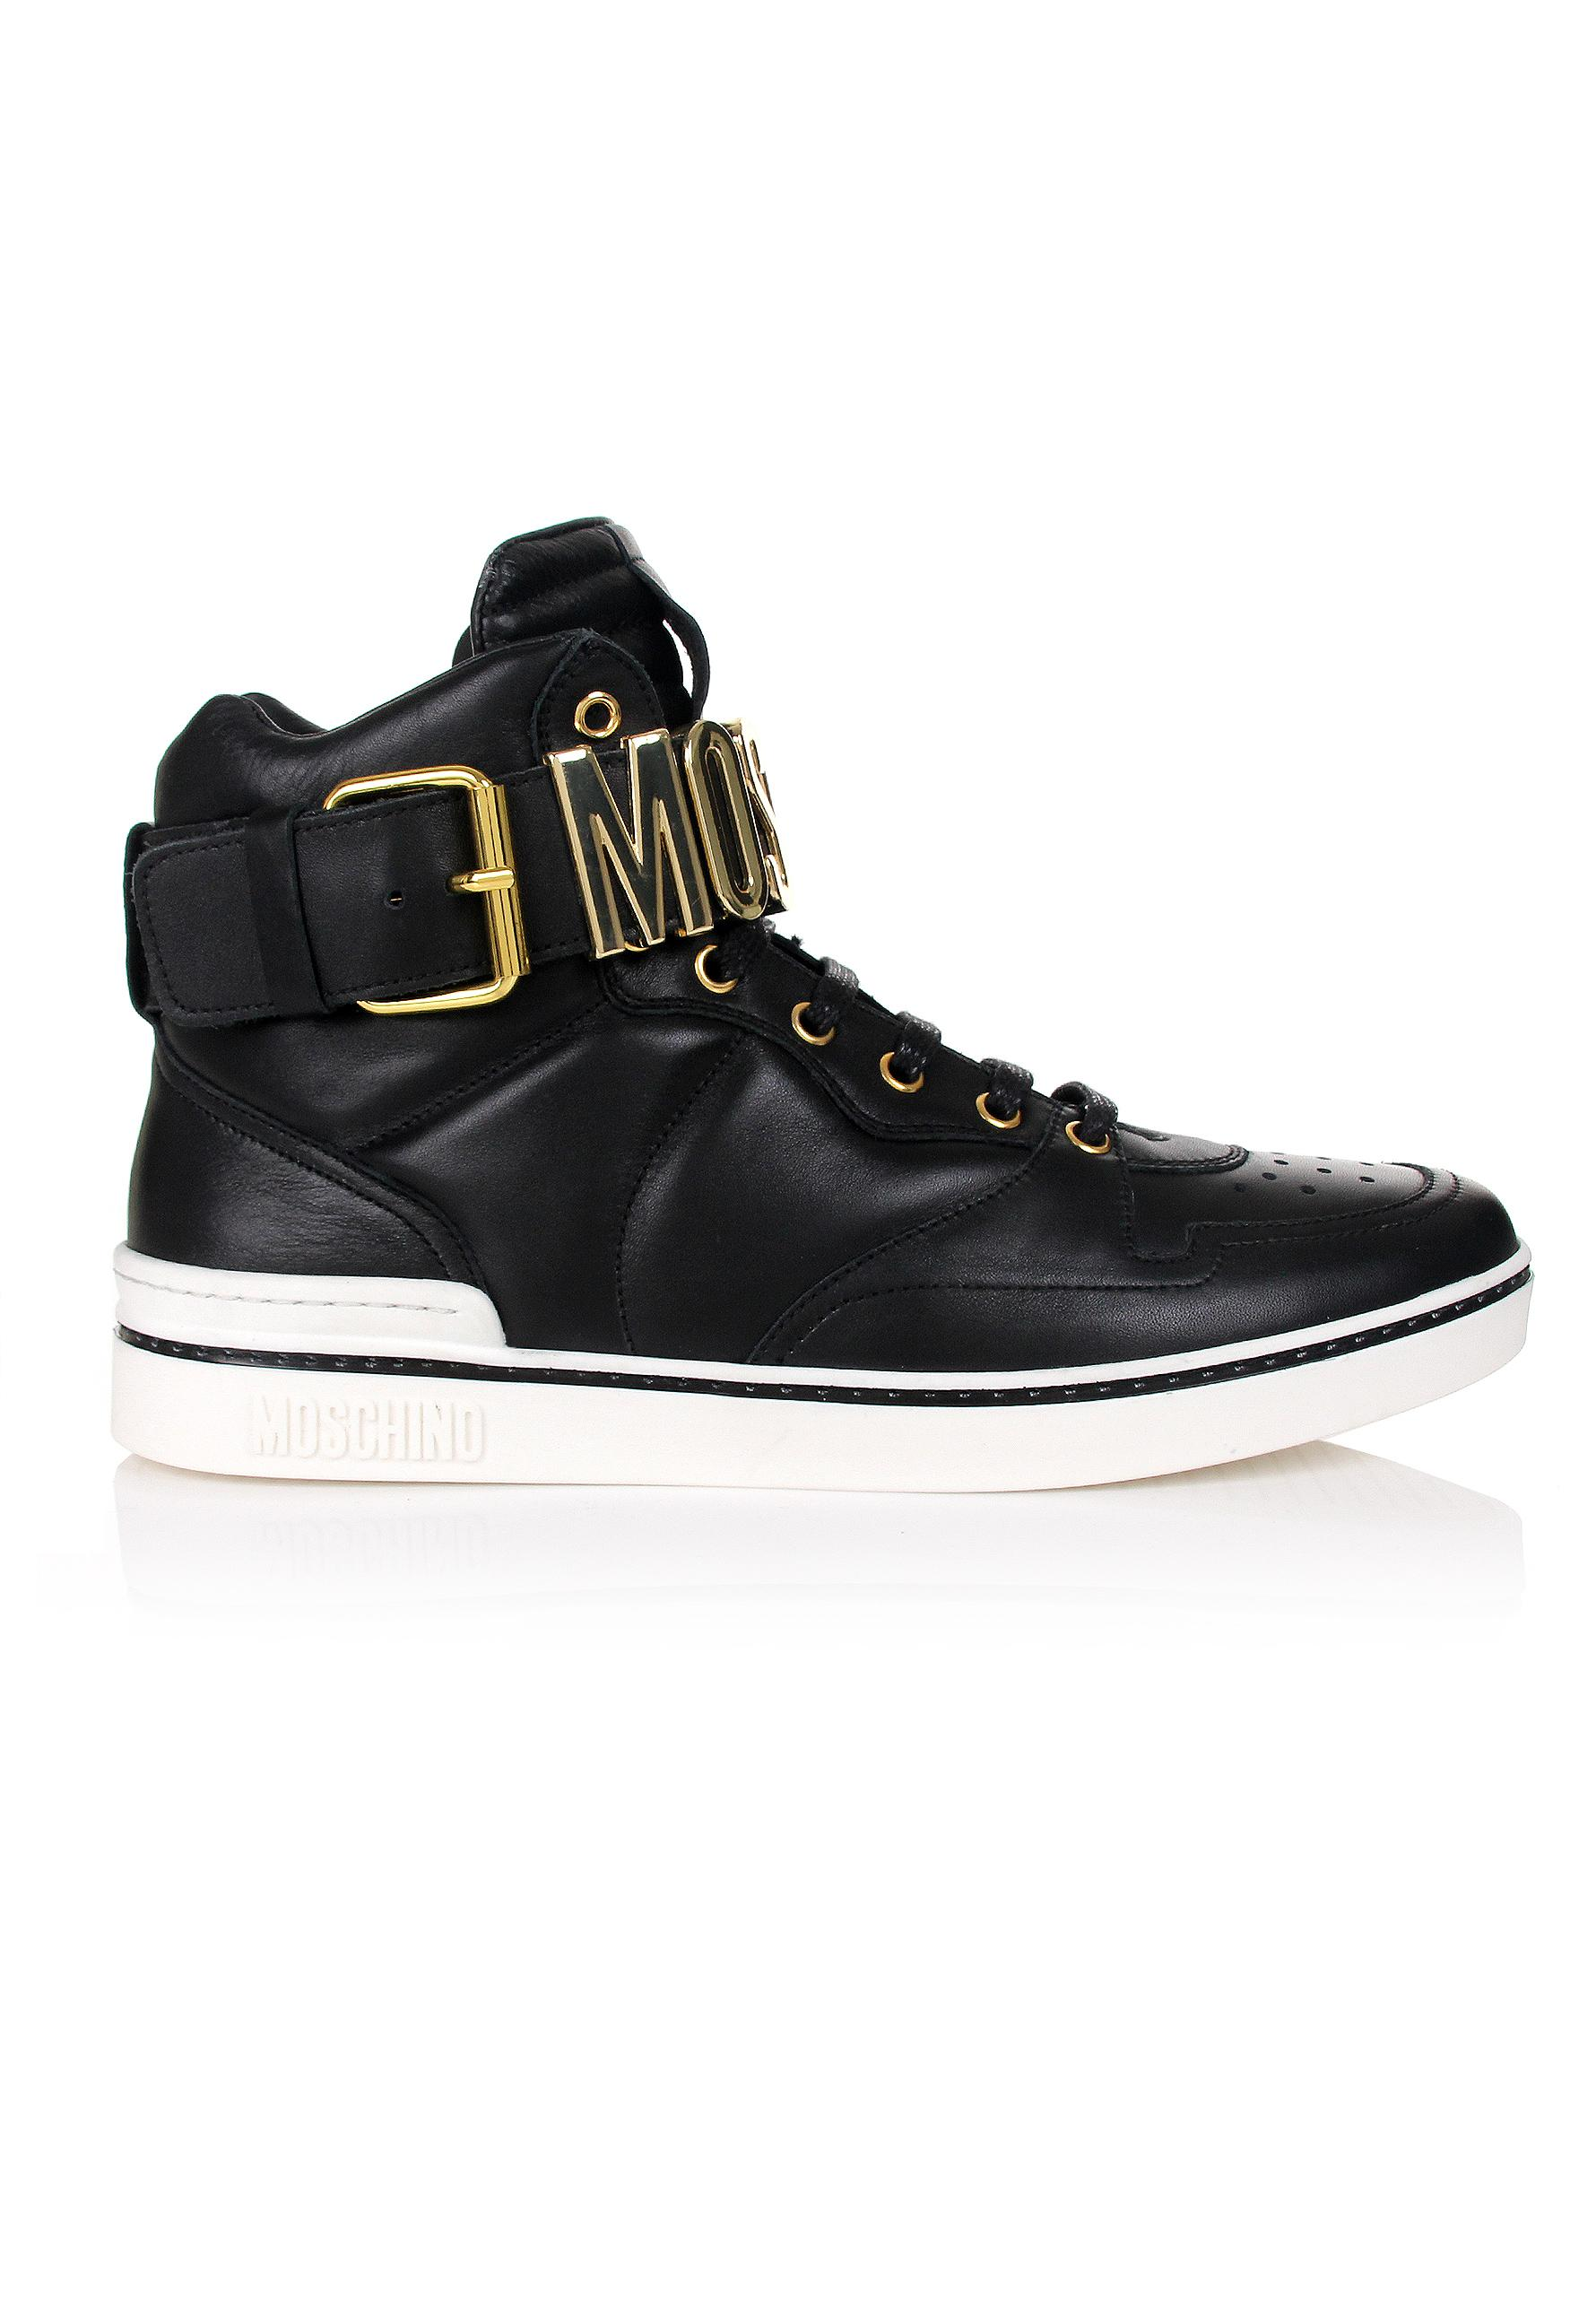 52c9ce29c0ffa Moschino Metal High Top Trainers Black gold in Black for Men - Lyst